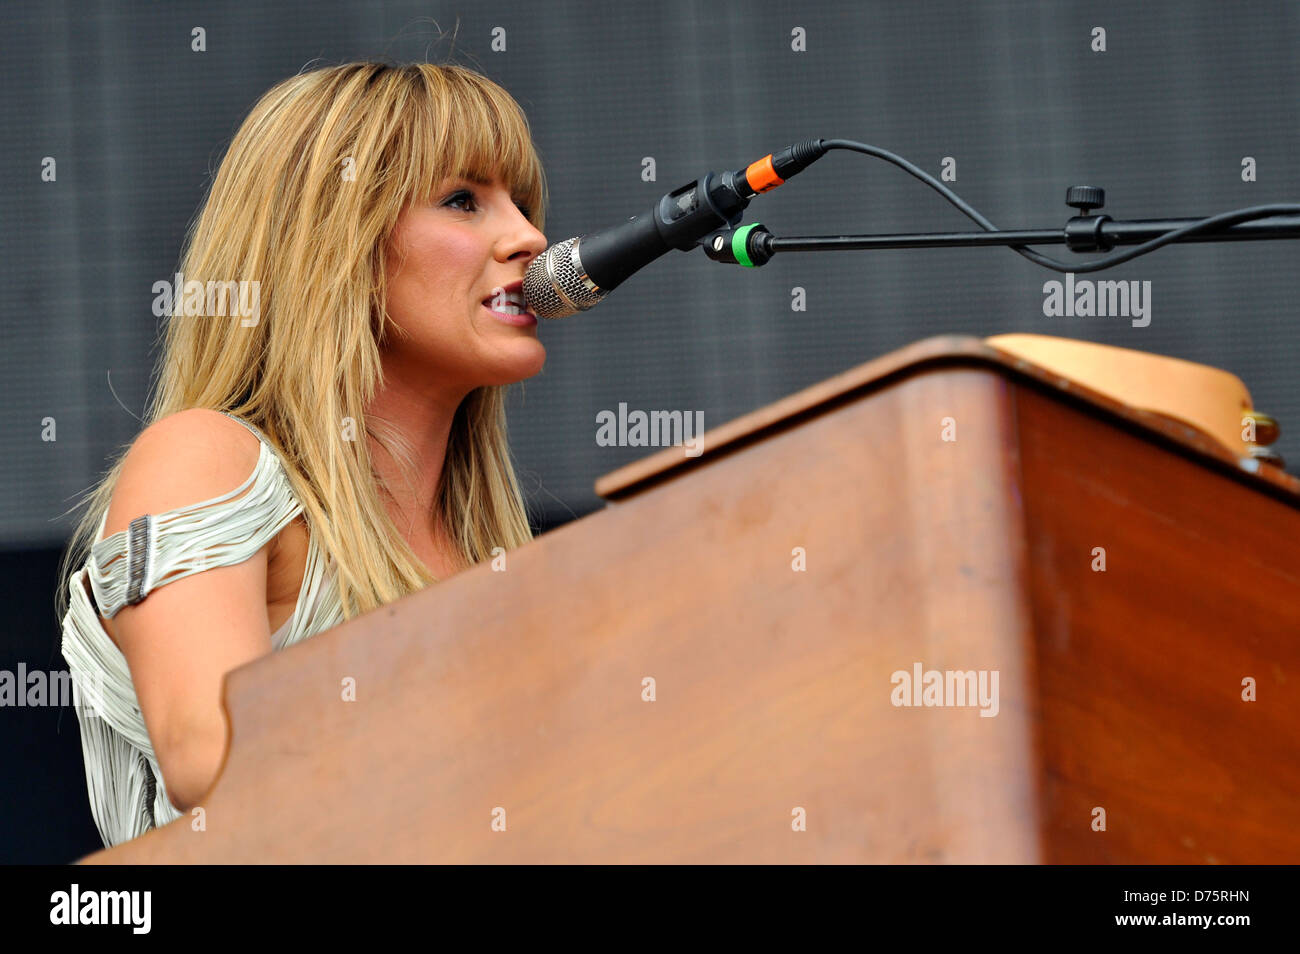 Grace Potter & The Nocturnals Lollapalooza Music Festival 2011 - Performances - Day 1 Chicago, Illinois - 05.08.11 - Stock Image